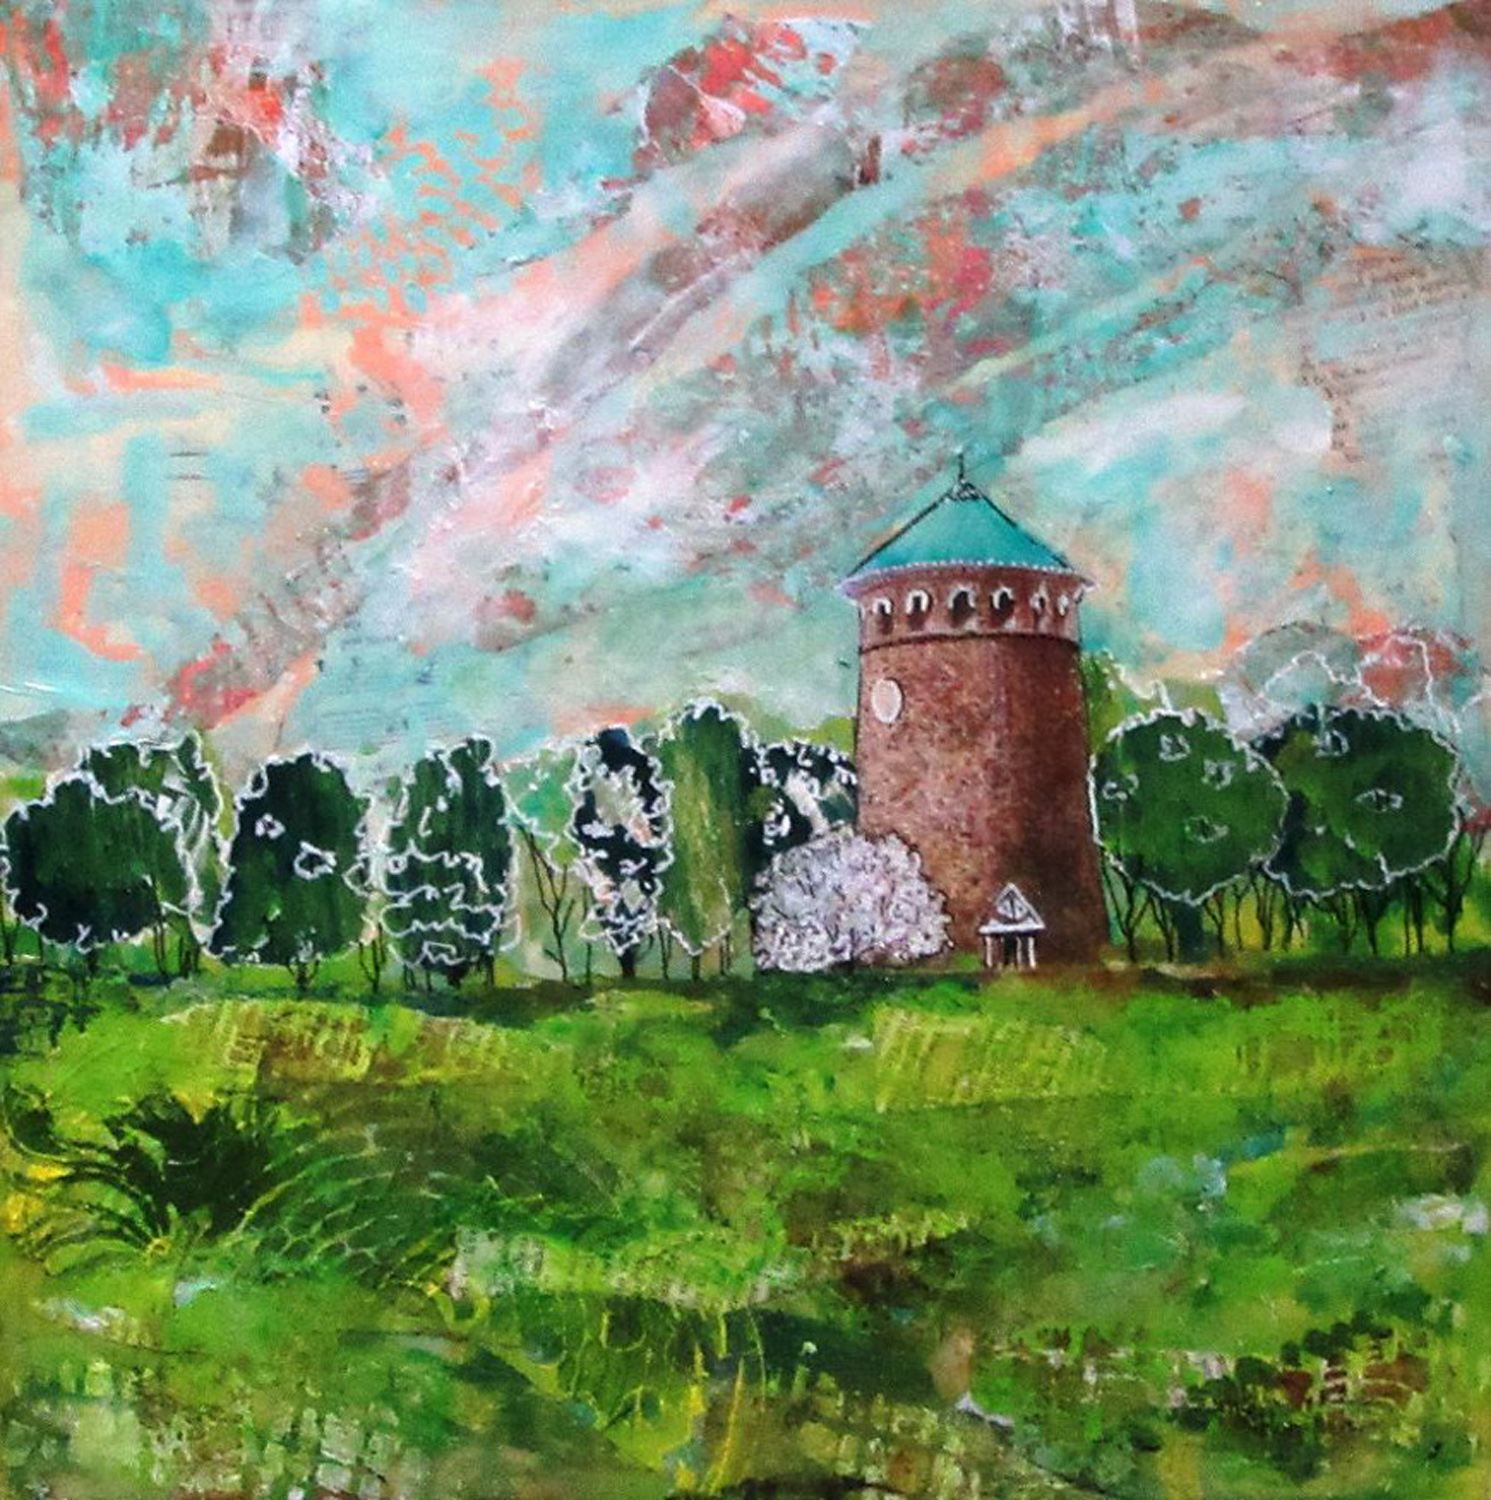 Rockford Tower in Summertime - Mary Lou Hamilton